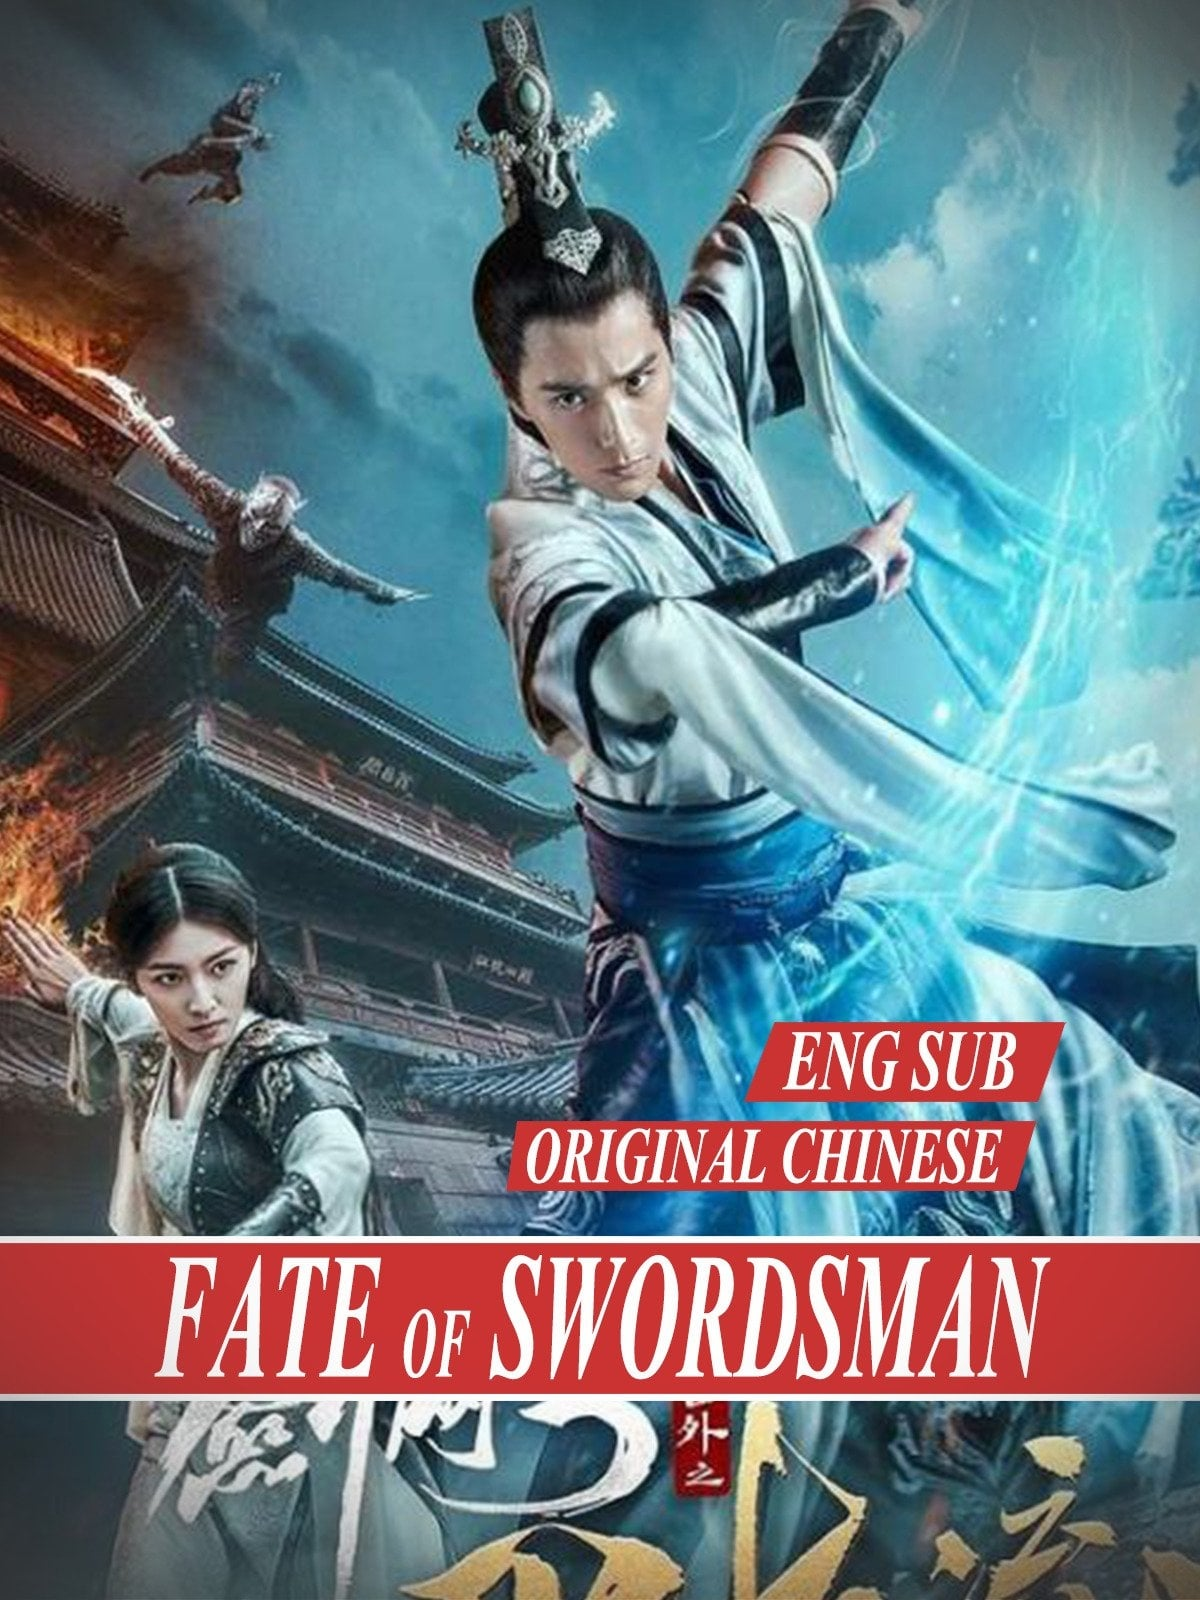 The Fate of Swordsman (2017)